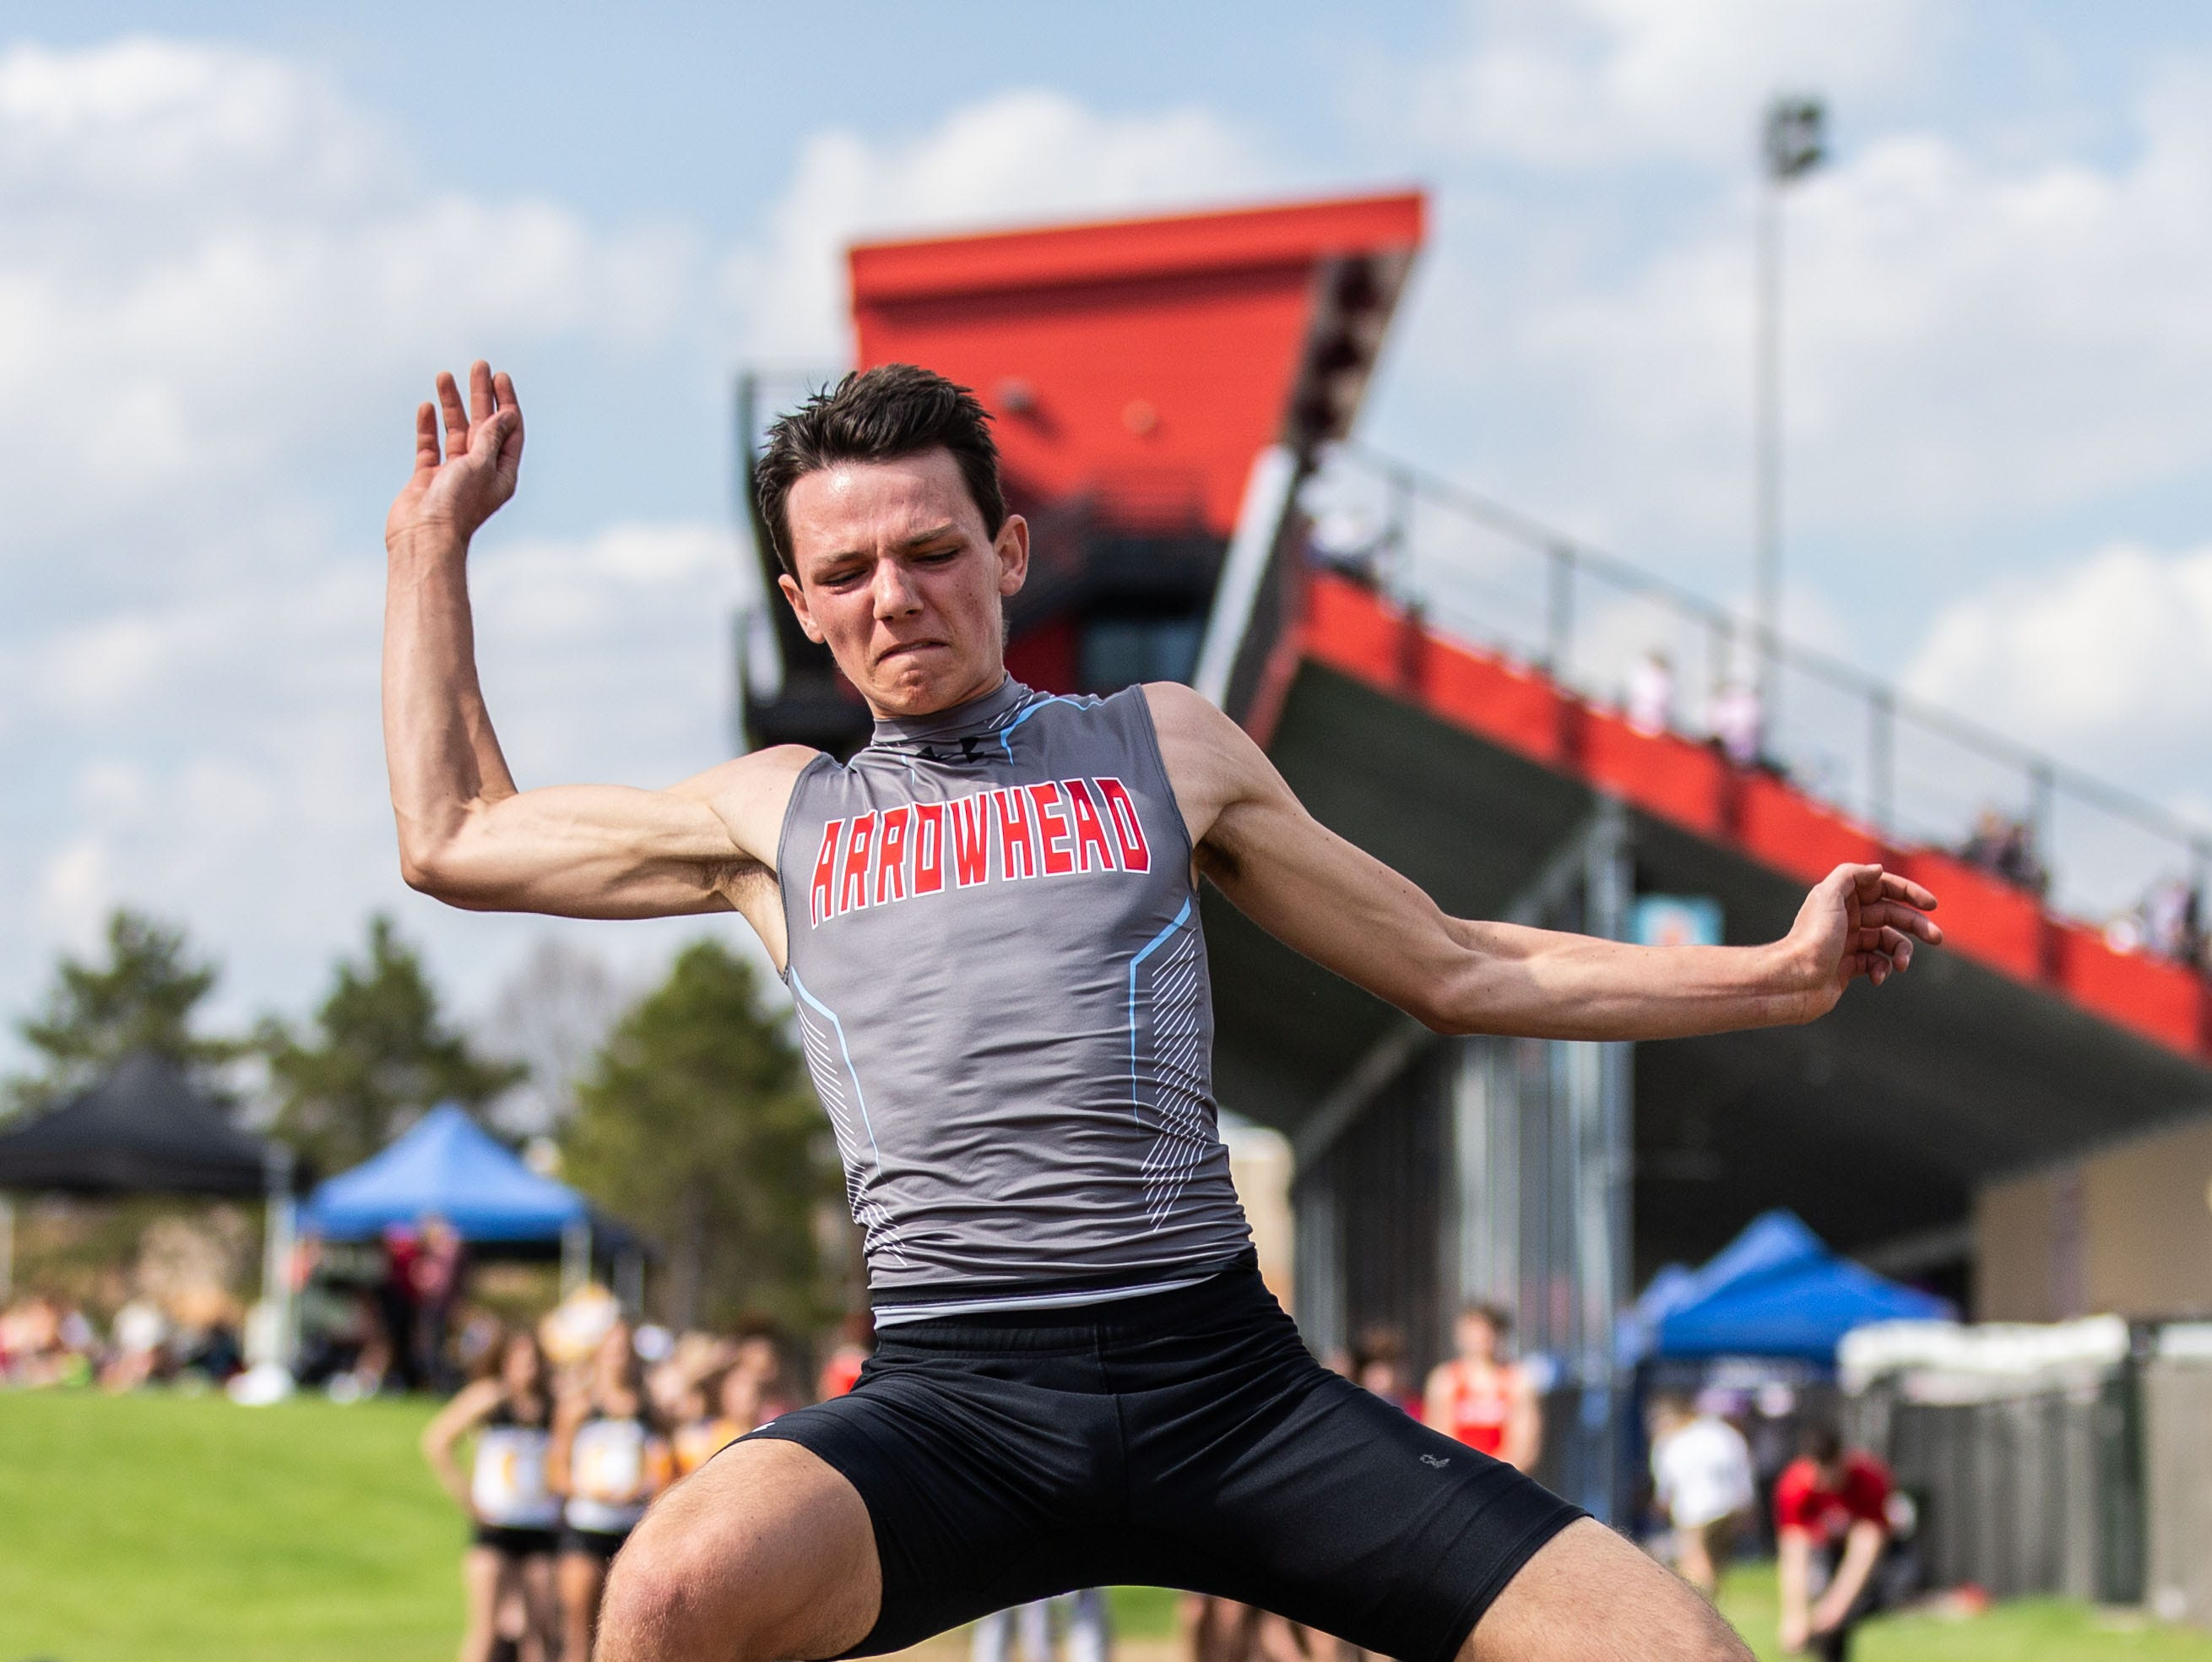 Arrowhead jumior Zachary Tarnowski competes in the long jump at the 2019 Myrhum Invitational track and field meet in Hartland on Saturday, May 4.